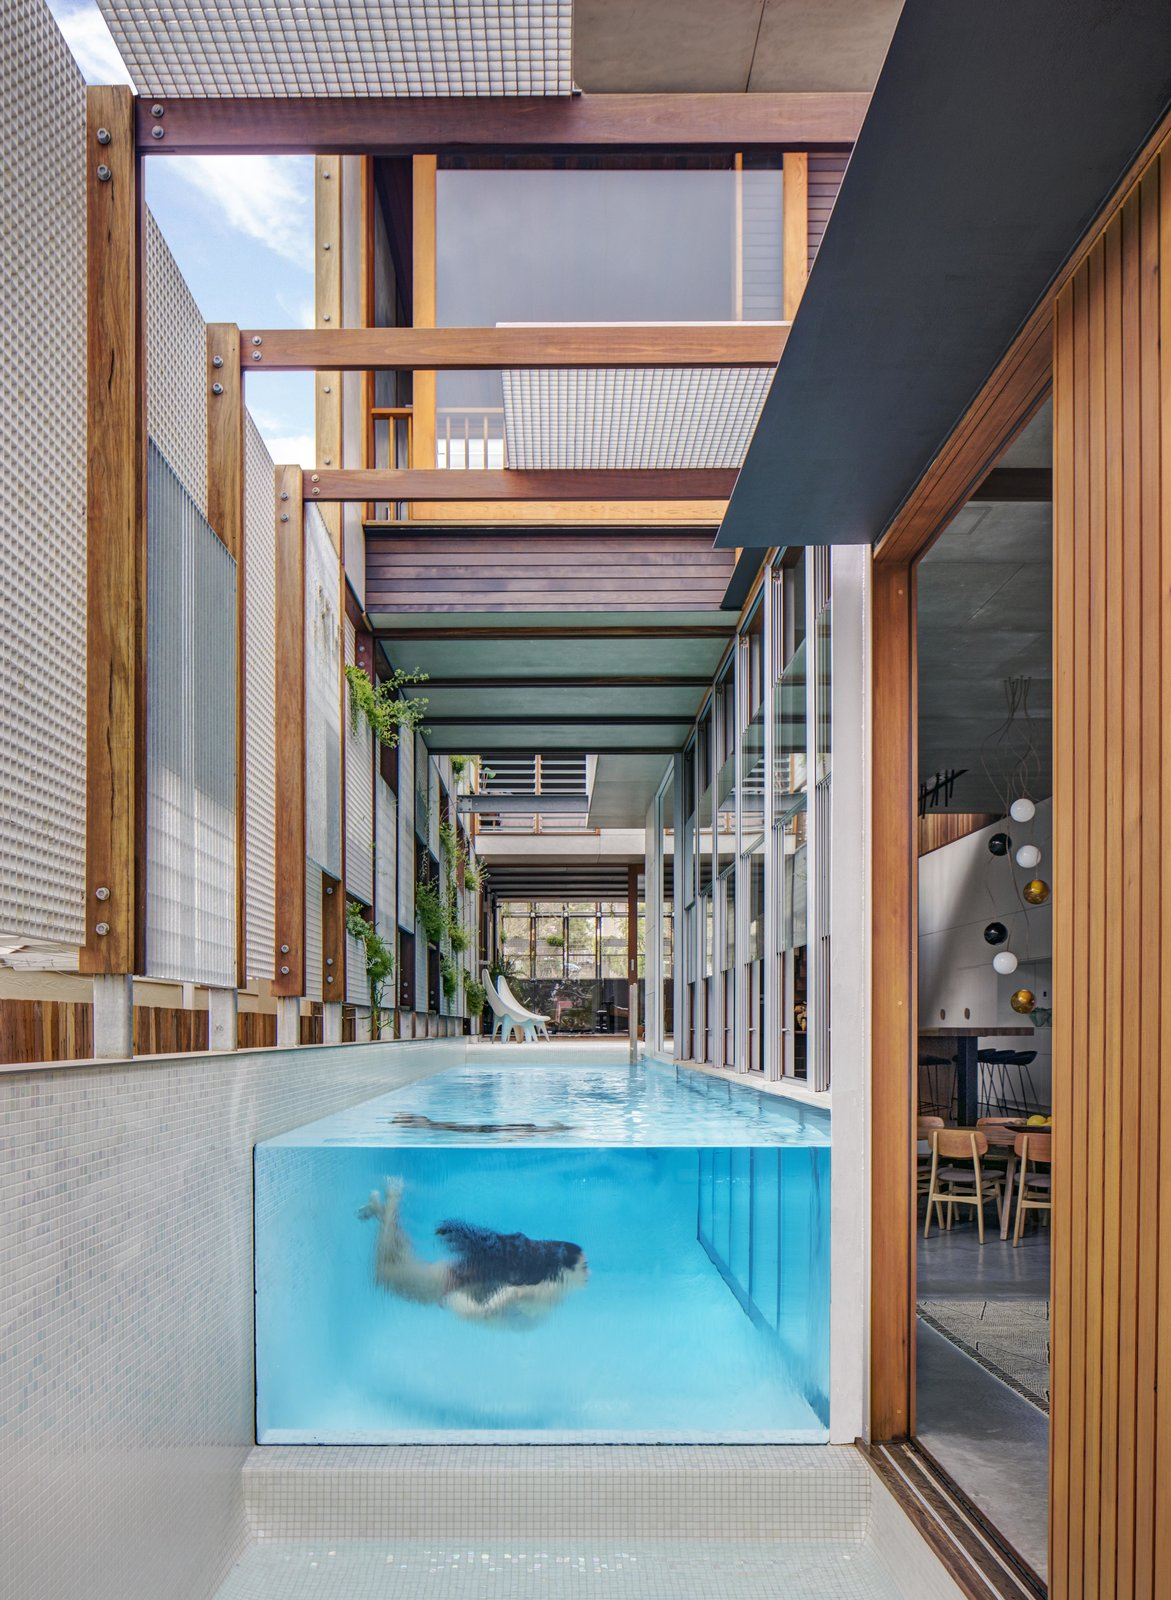 Outdoor and Swimming Pools, Tubs, Shower  Photo 13 of 19 in Living Screens Conceal a North Bondi Beach House and a Semi-Indoor Pool